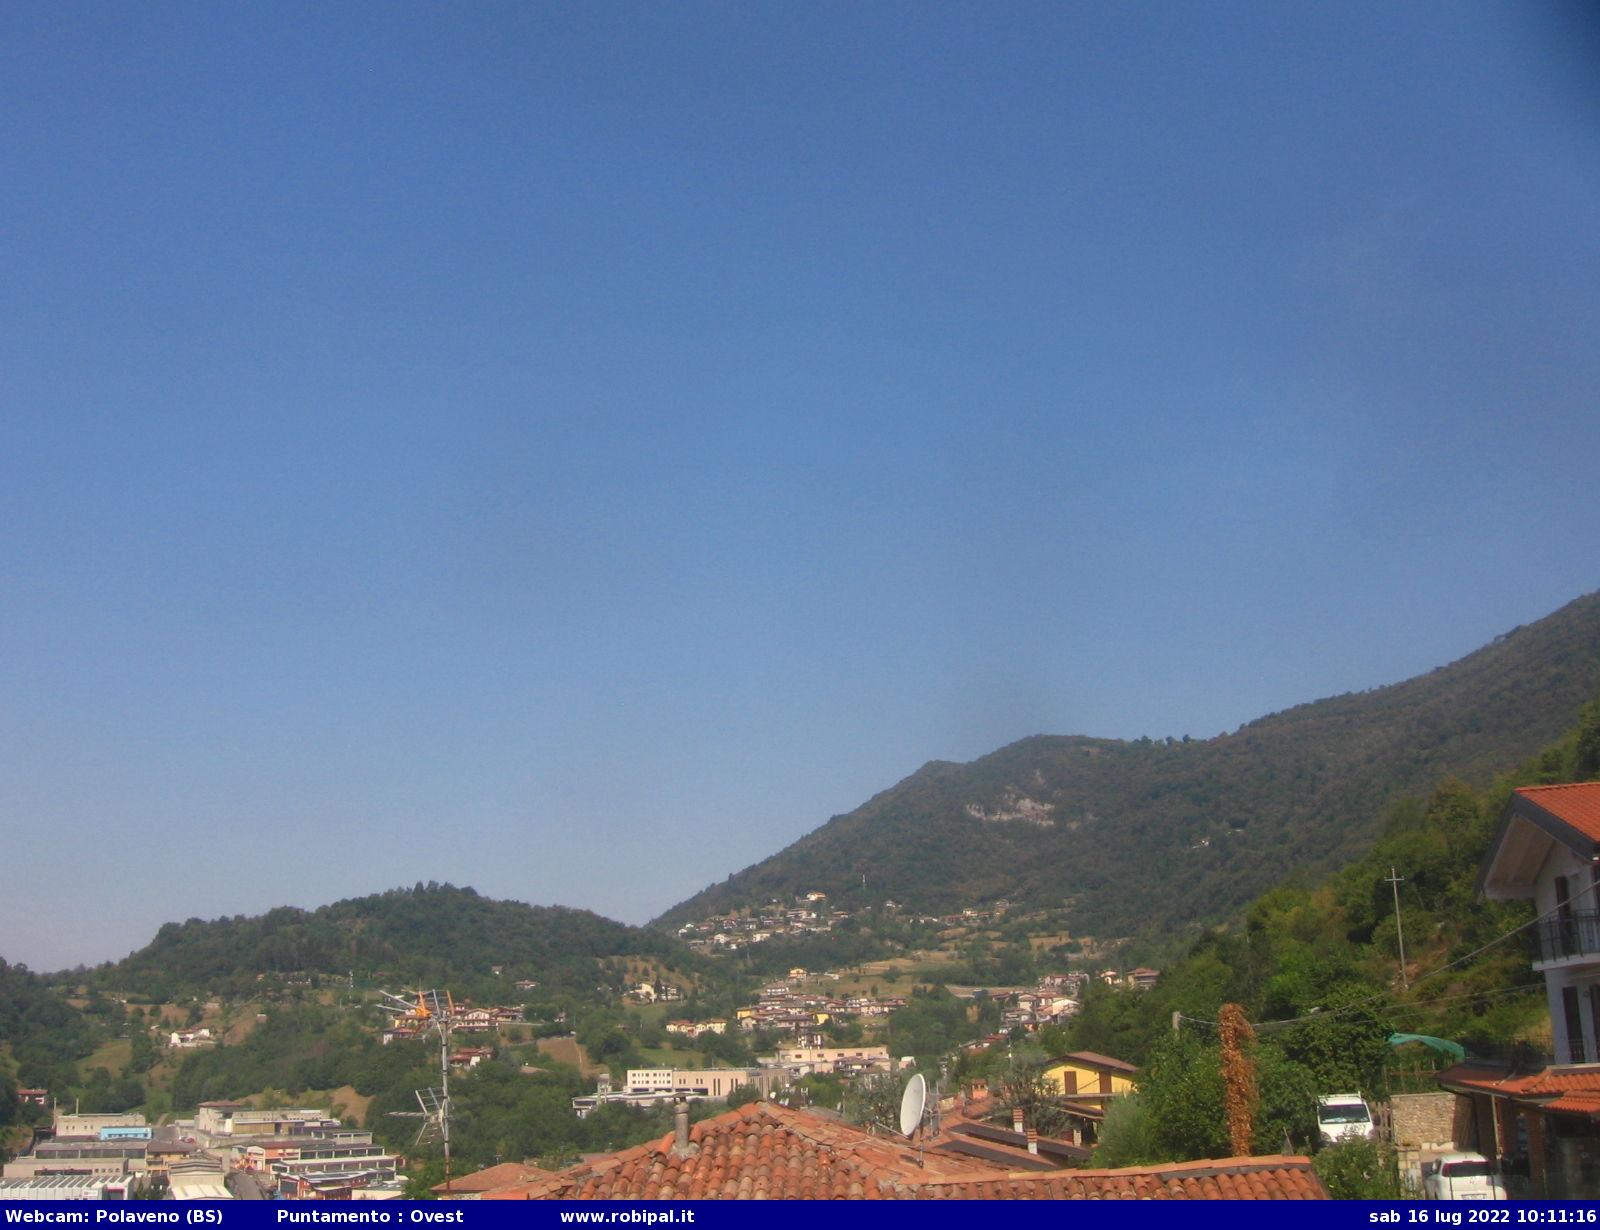 Webcam Polaveno (Bs)